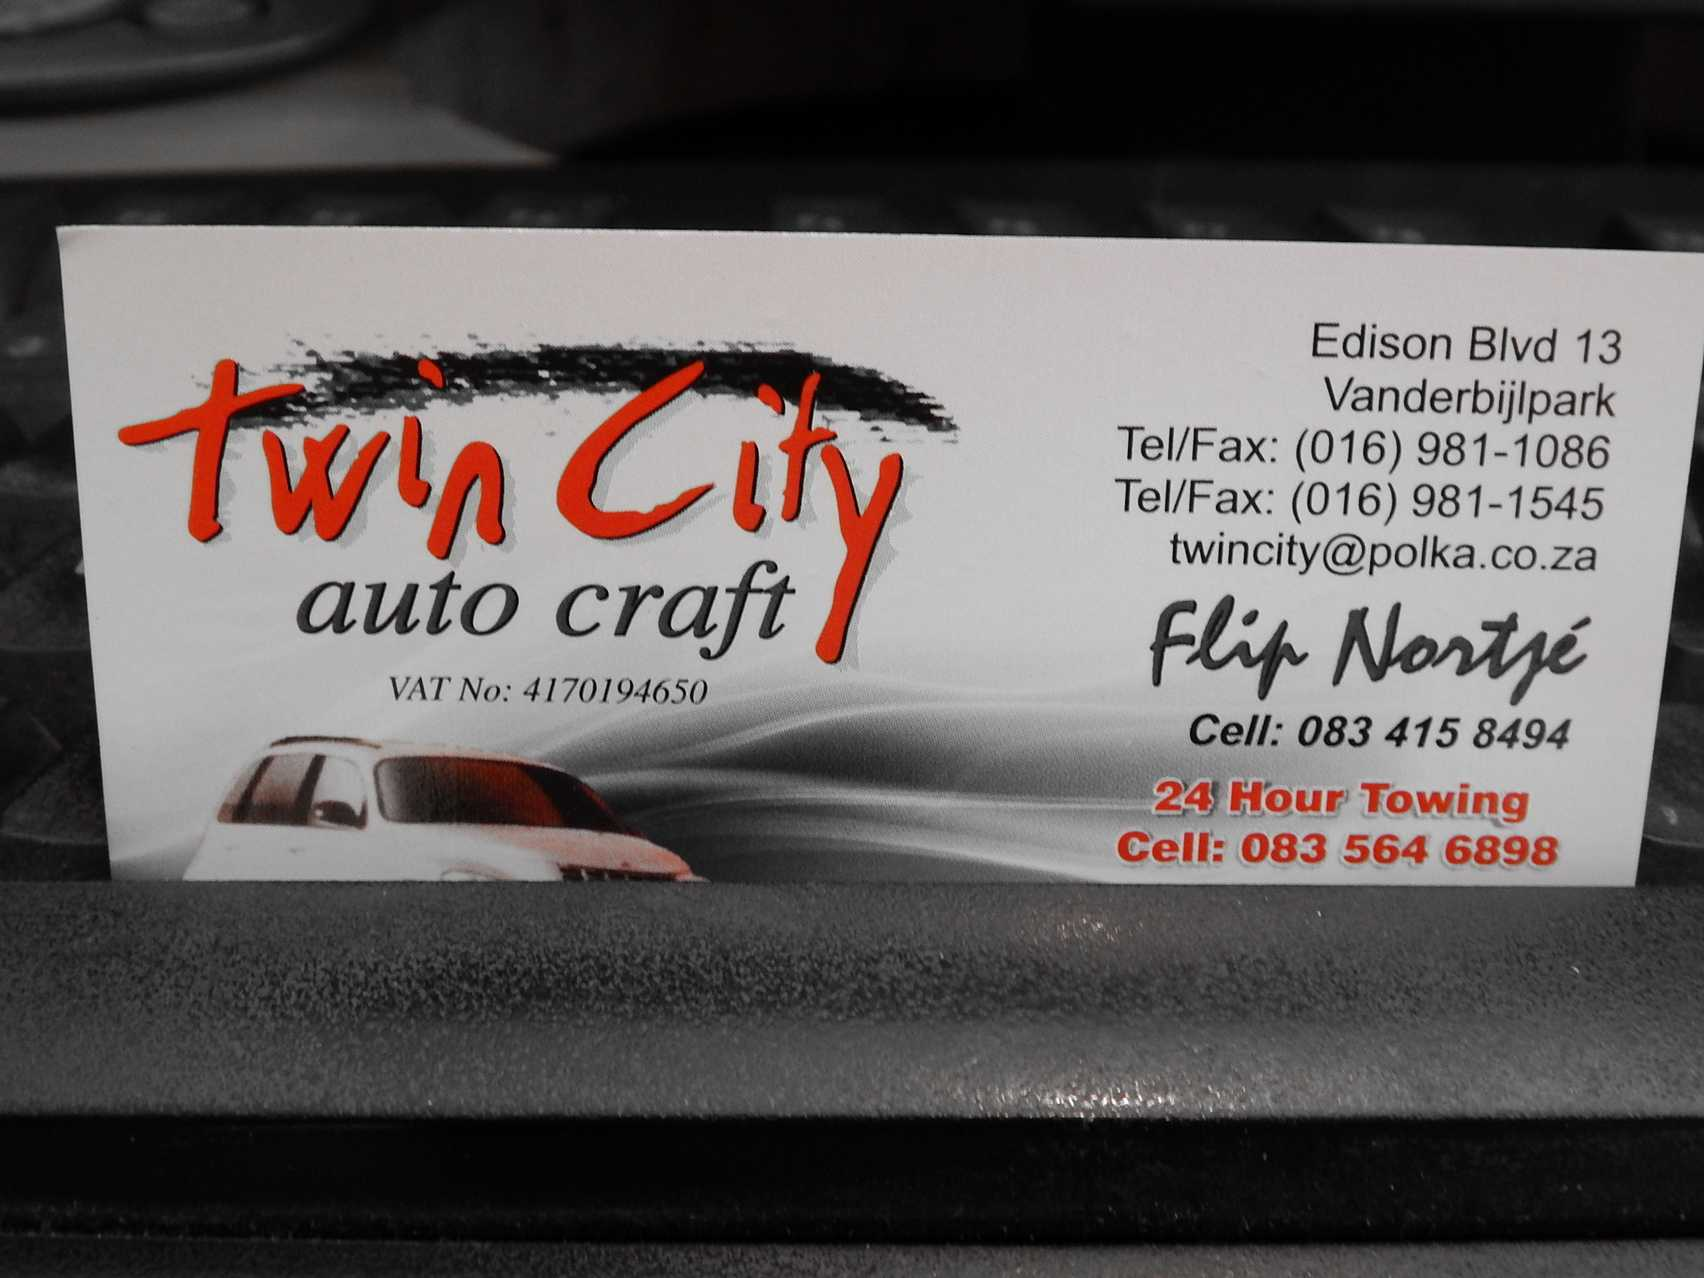 Twin City Auto Craft